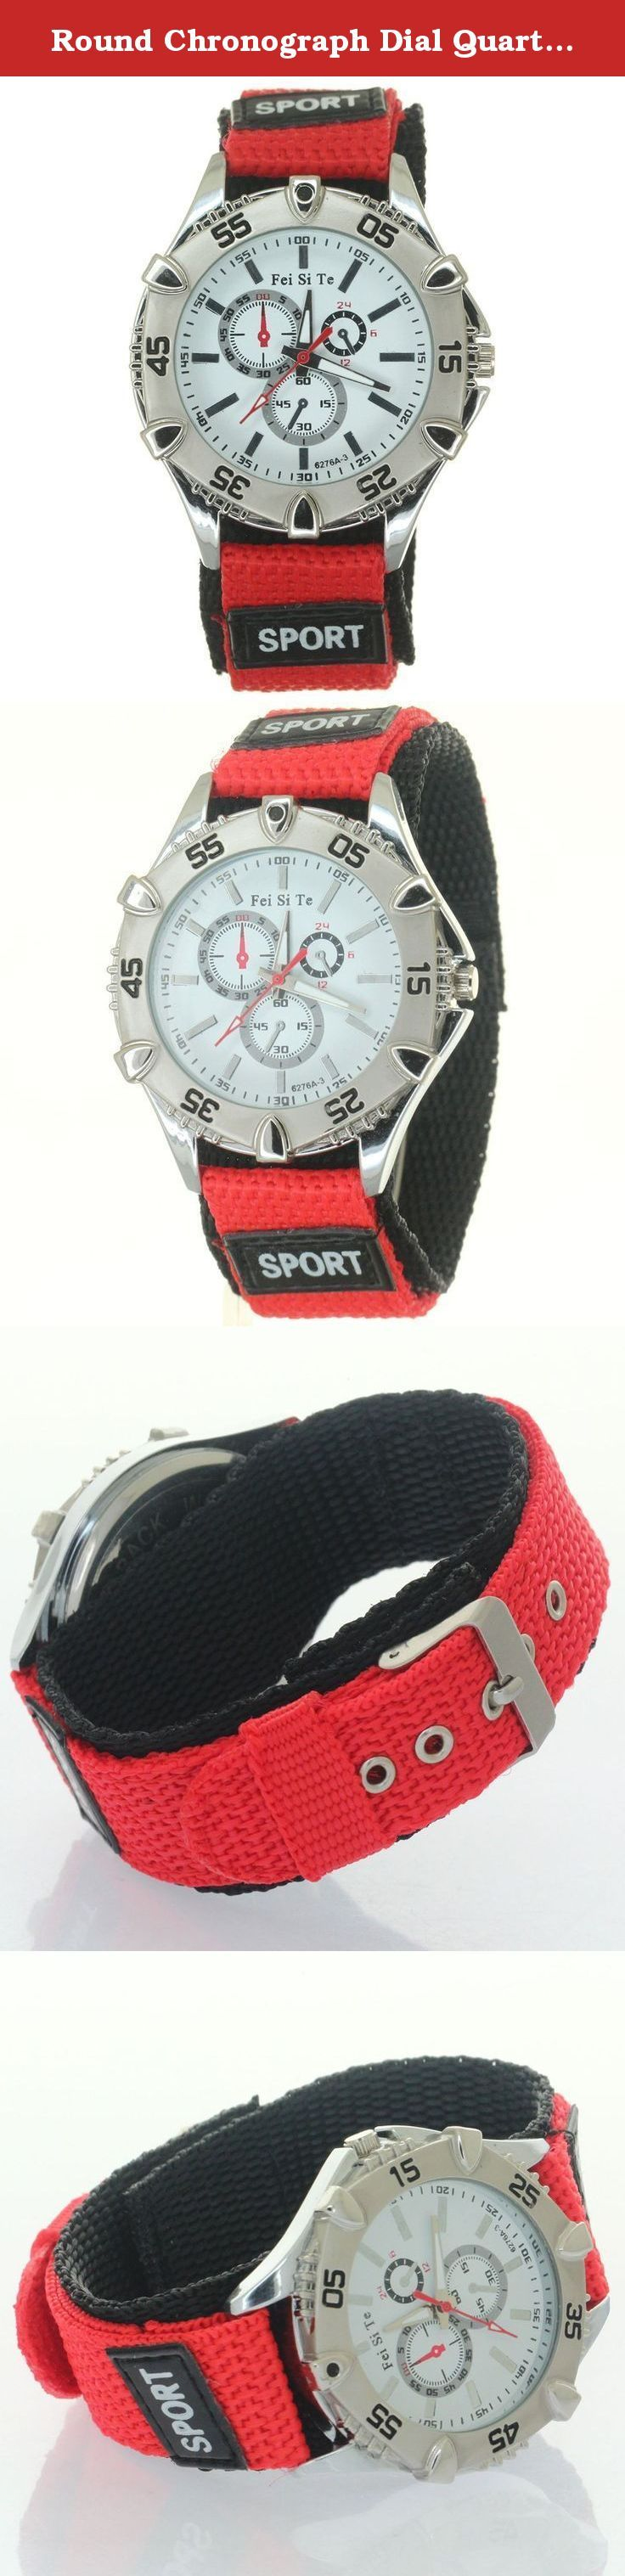 Round Chronograph Dial Quartz Outdoor Sport Red Weave Nylon Strap Belt Fabric Velcro Luminous Marks. Round Chronograph Dial Quartz Outdoor Sport Red Weave Nylon Strap Belt Fabric Velcro Luminous Marks Sports Quartz Bezel Crown Men Women Wristwatch Nylon Strap Belt Stripe Fiber Fabric Velcro Buckle Woven Nylon Watch Strap Fabric Band Velcro Buckle Sports Quartz Bezel Crown Men Women Kid Wristwatch Double Layer Nylon Watch Strap Velcro Fastener Polished Buckle Functional uni-direction bezel...